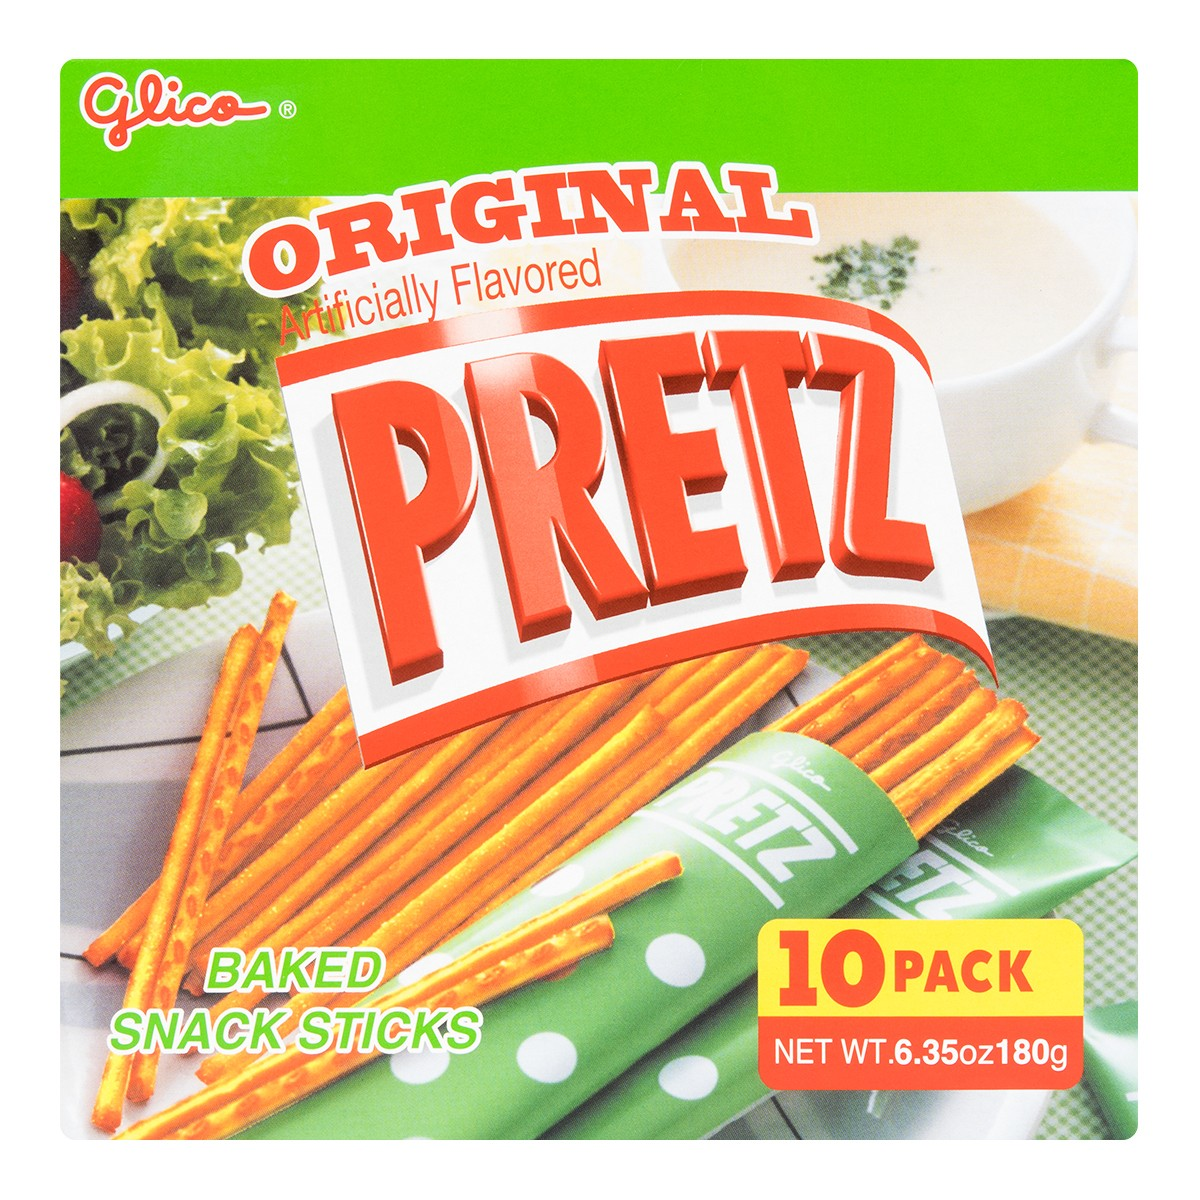 GLICO PRETZ Baked Snack Sticks Original Flavor 10pcs